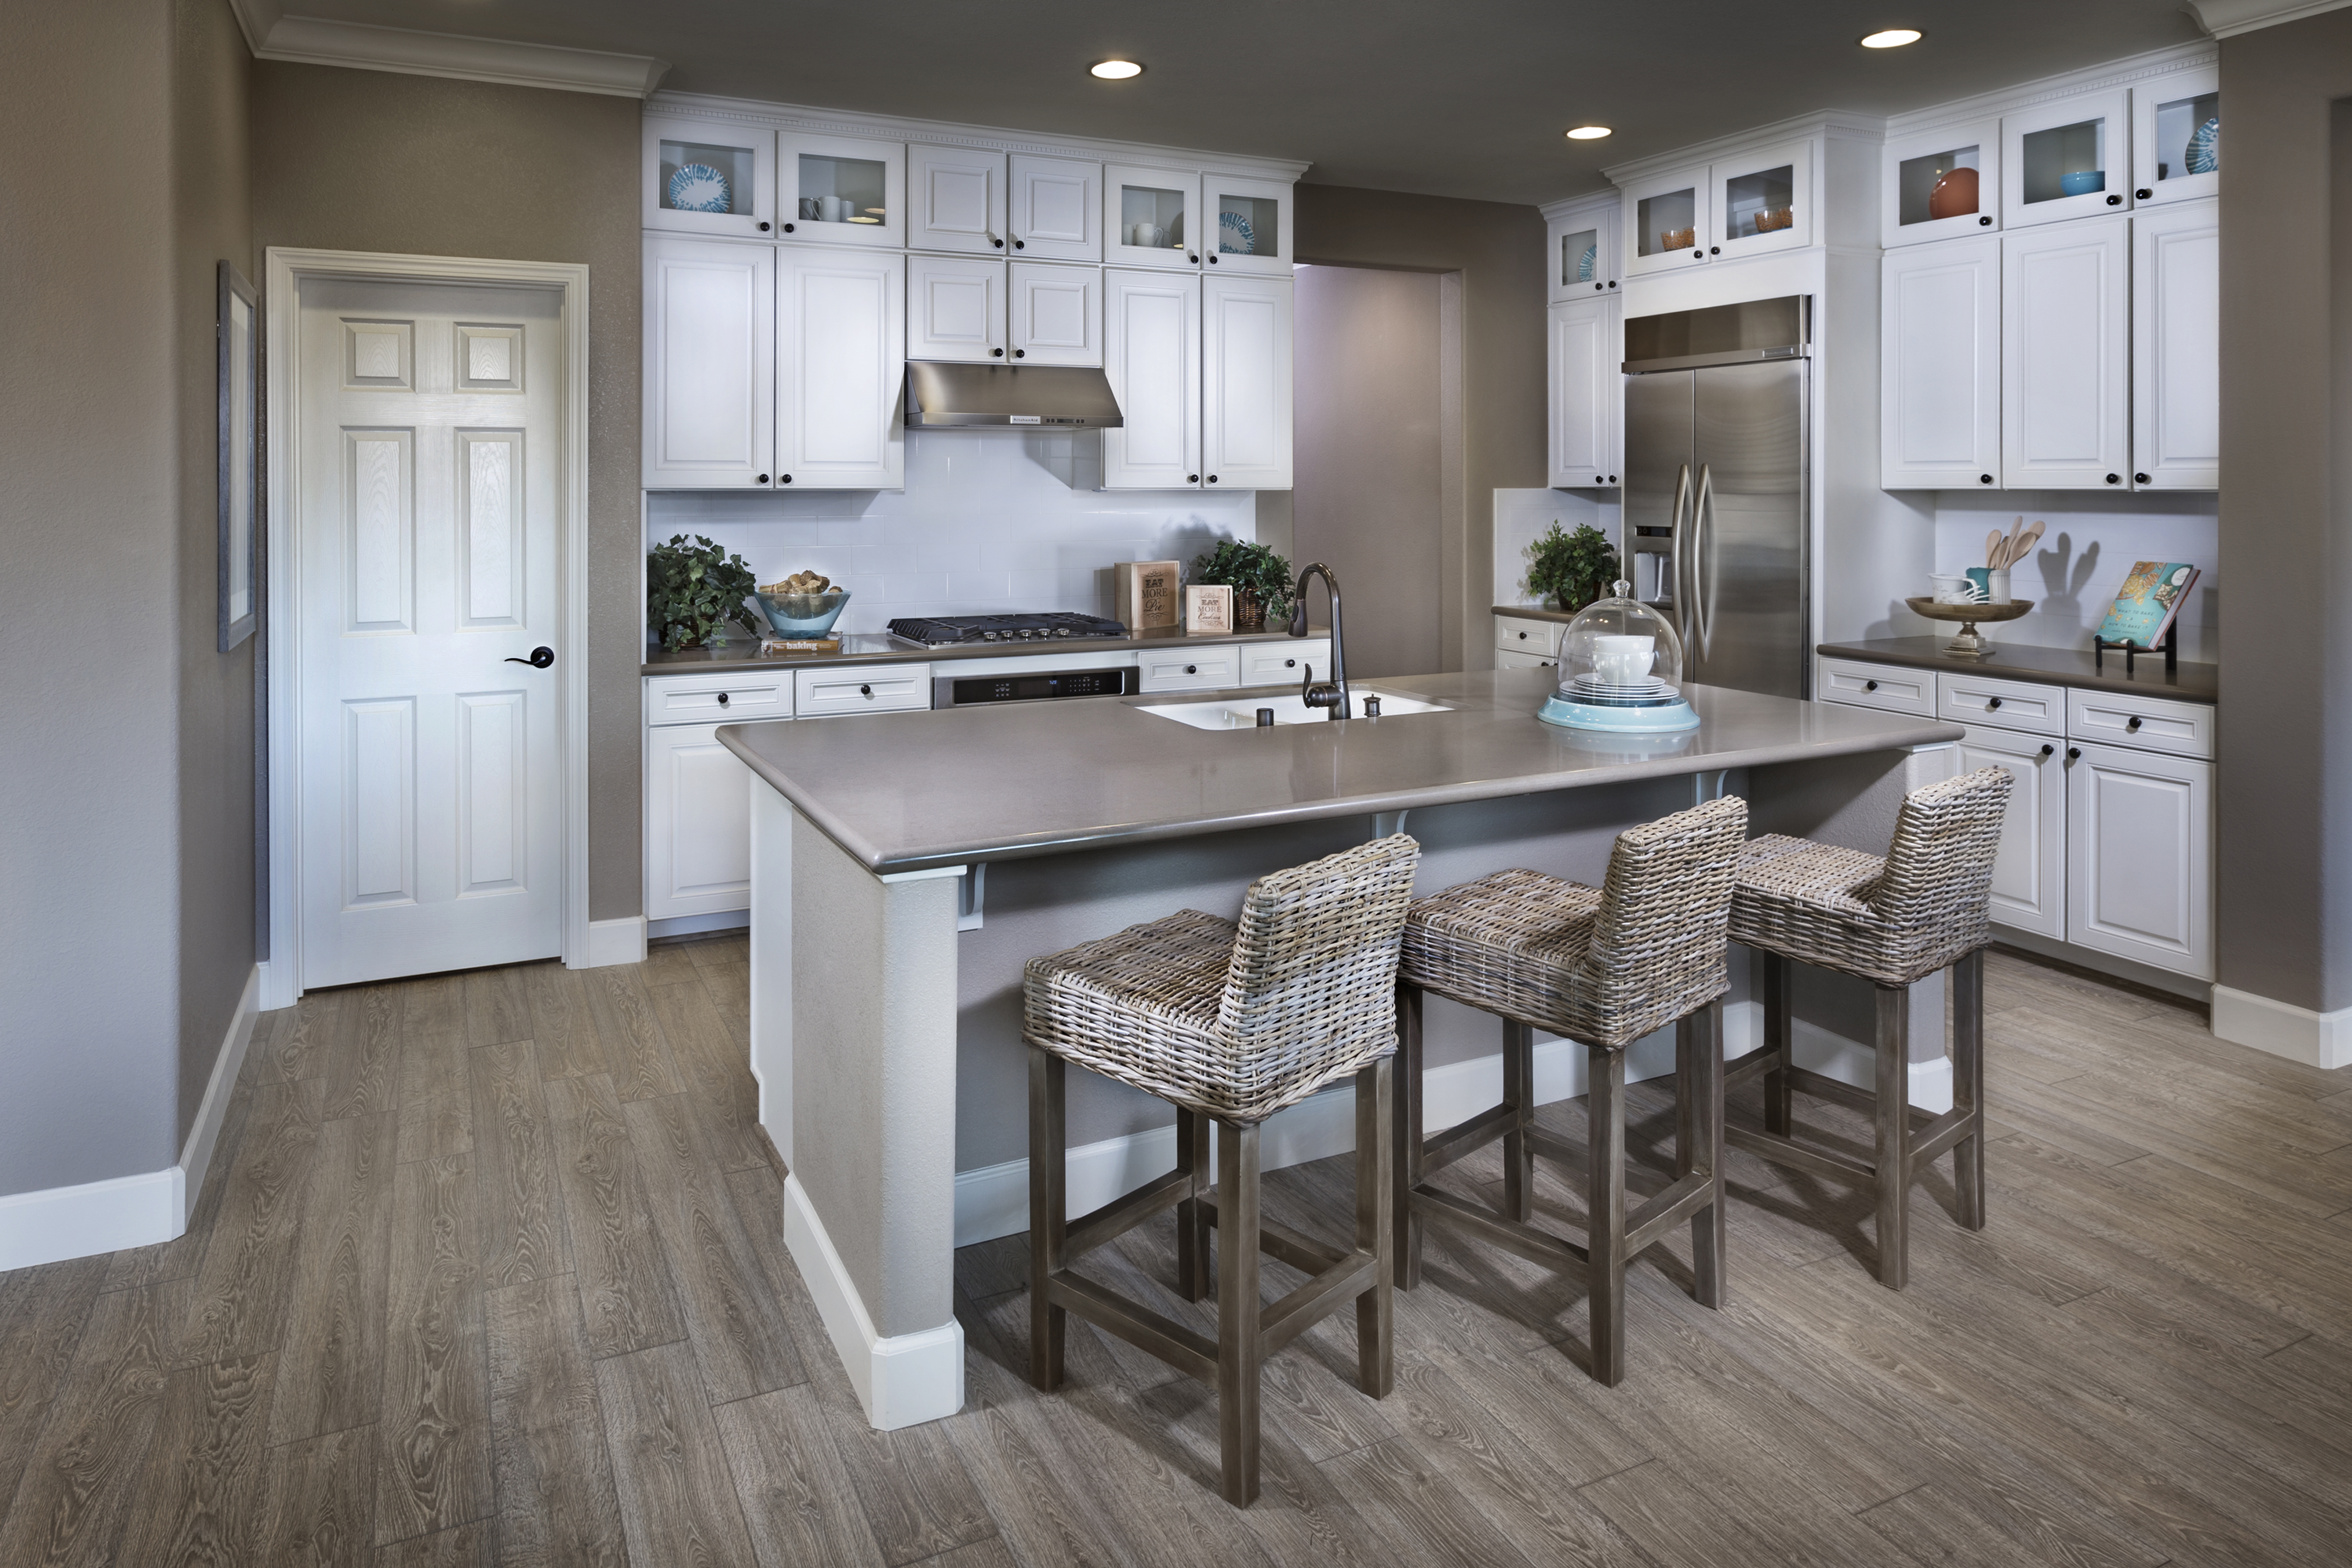 Kb home announces the grand opening of its new sterling chateau community in vacaville Kb home design ideas